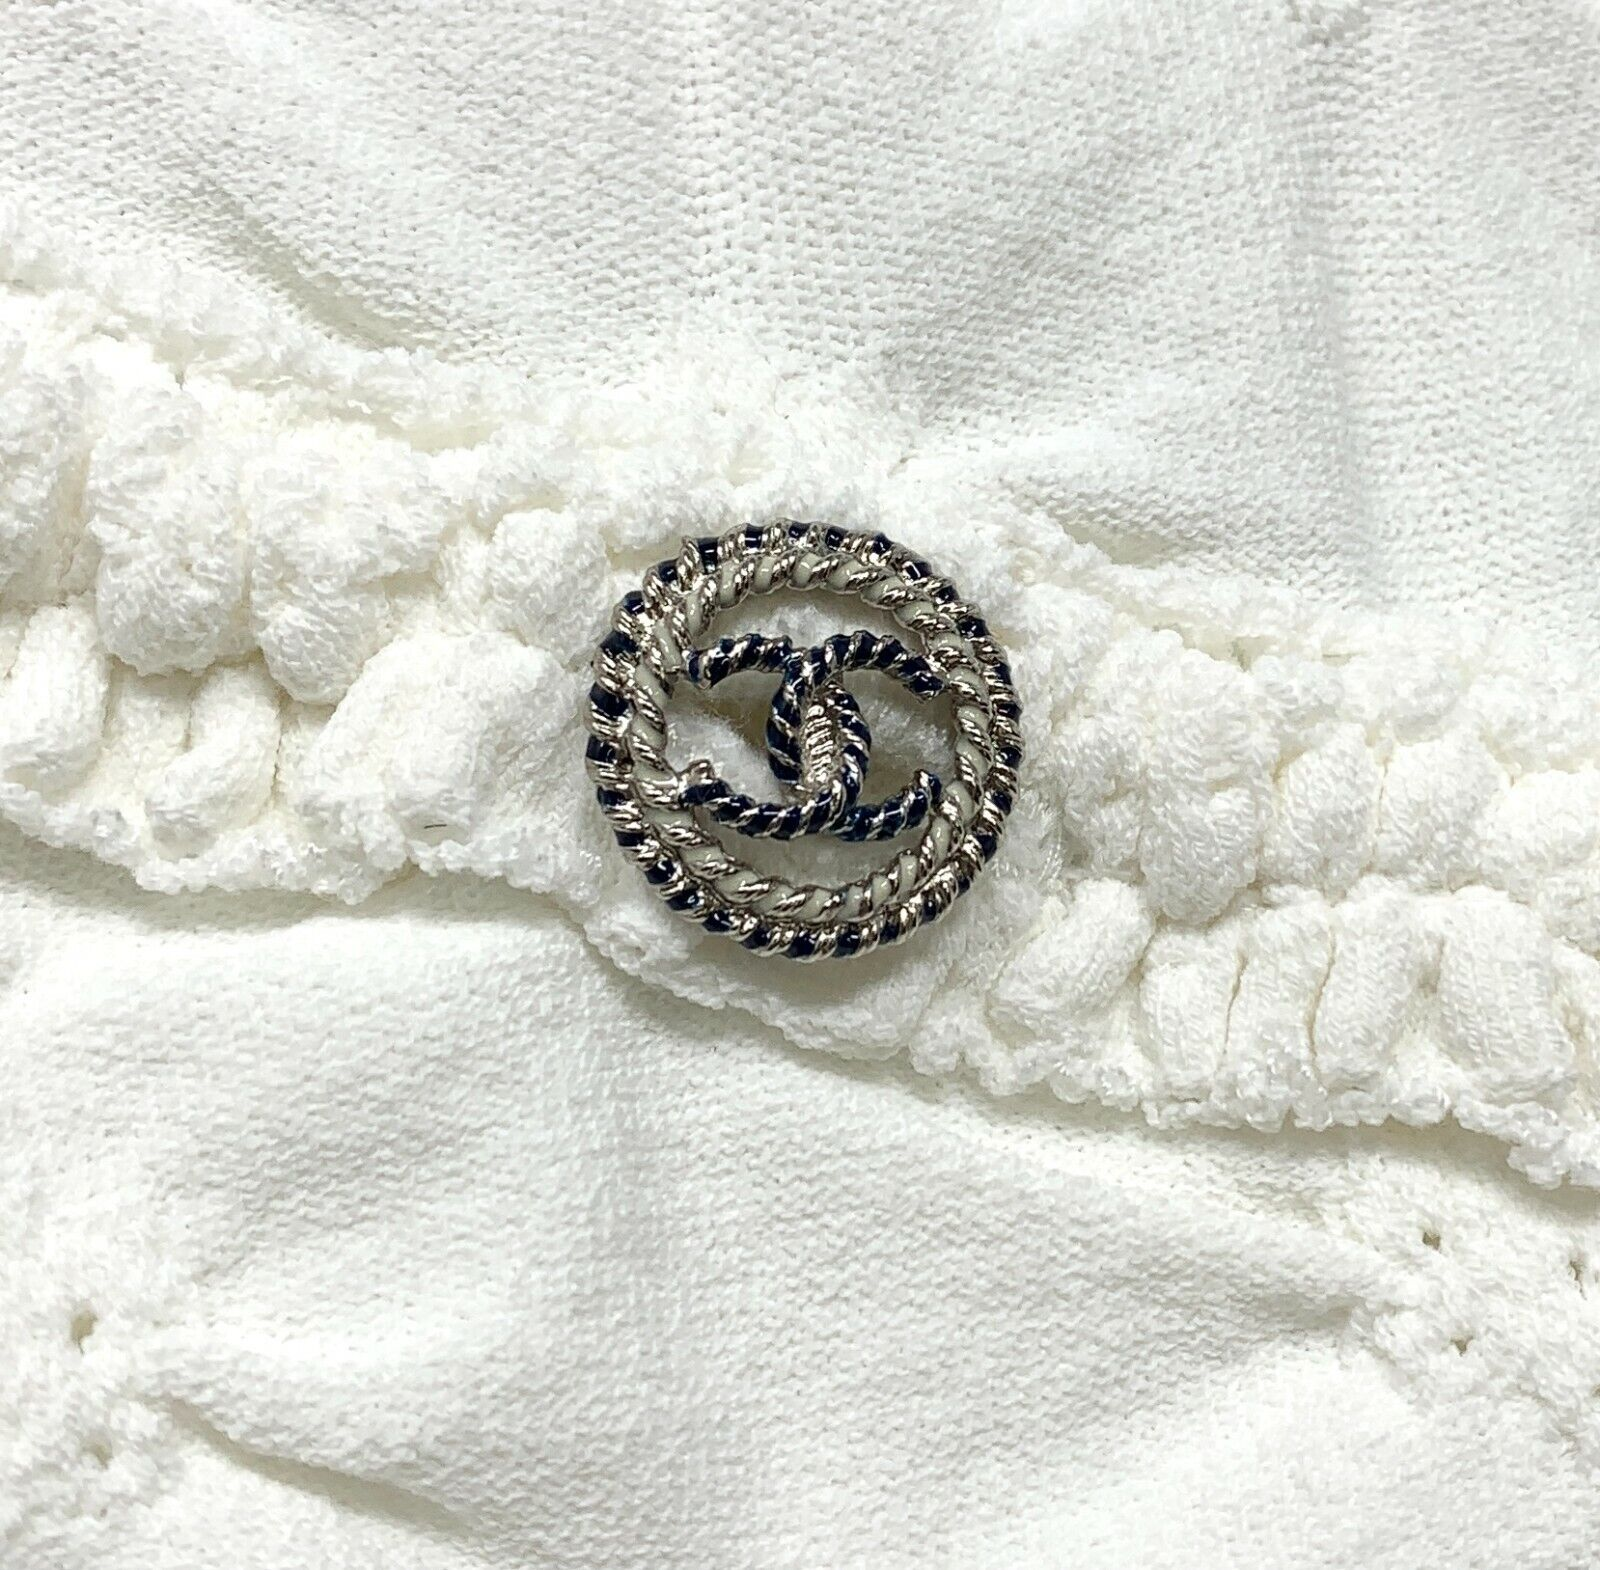 Authentique chanel p40326 cc logo boutons robe #38 rayon nylon blanc rank ab